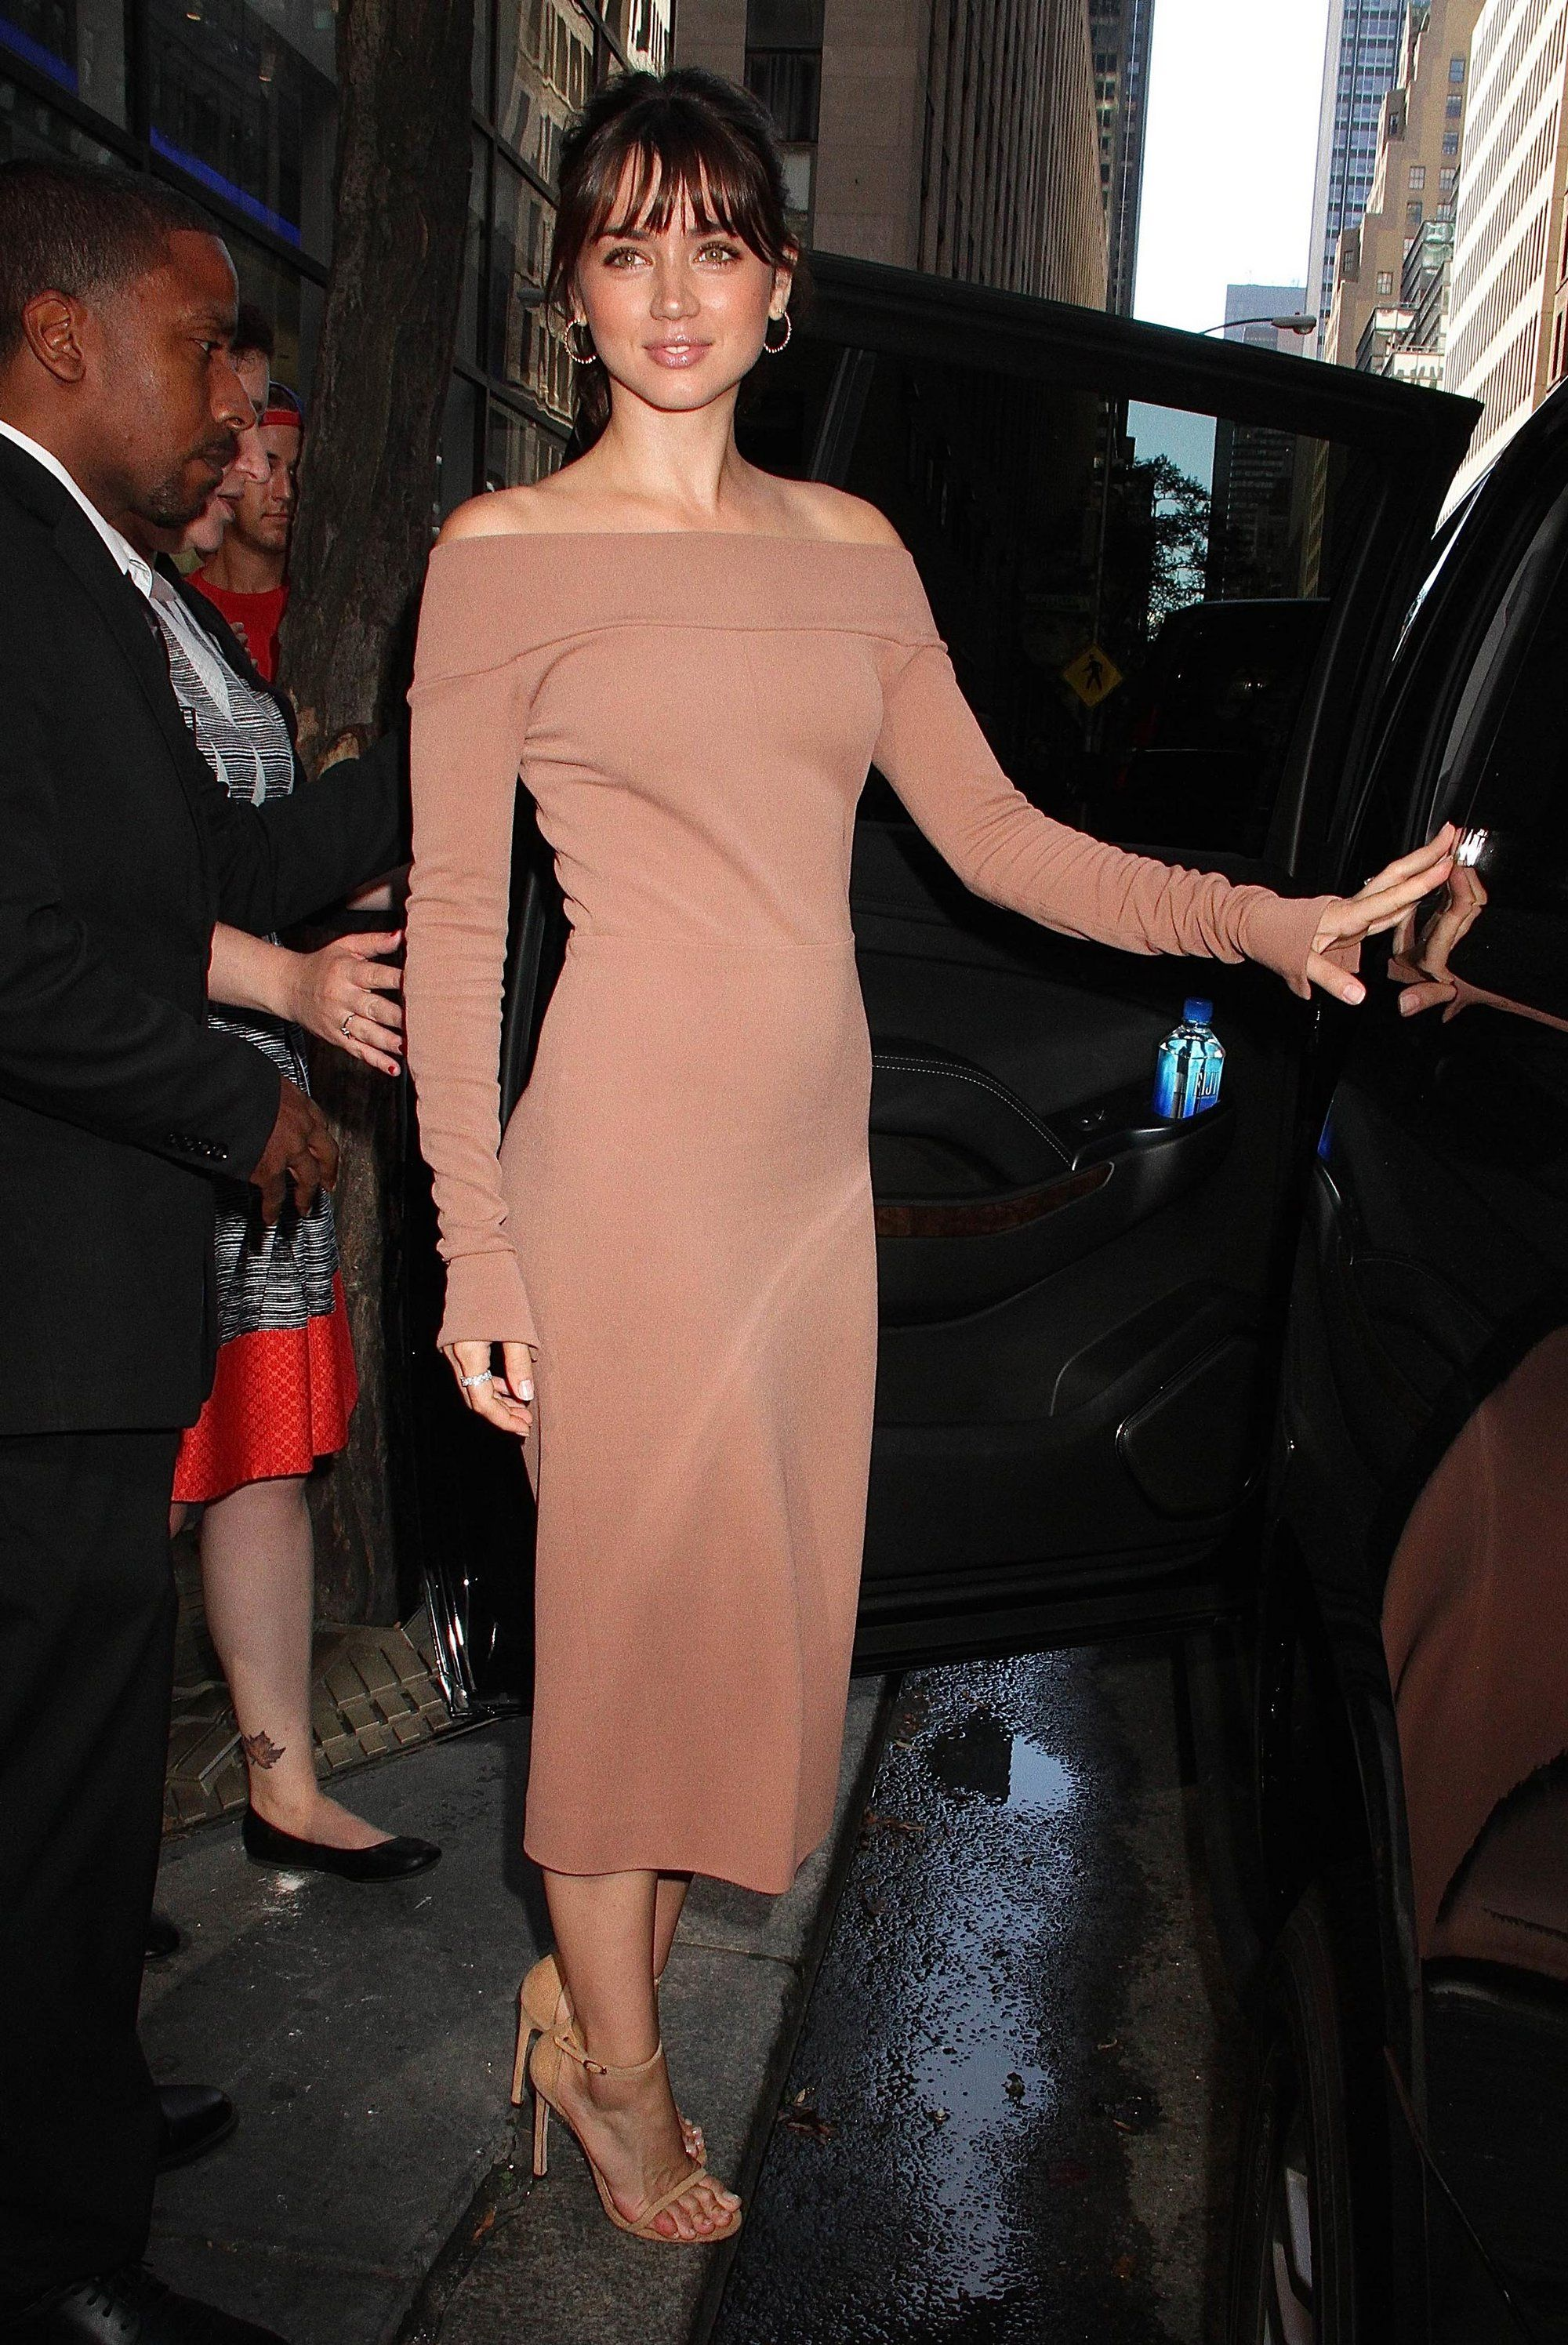 Ana de Armas Is Demure but Direct in the Off-the-Shoulder